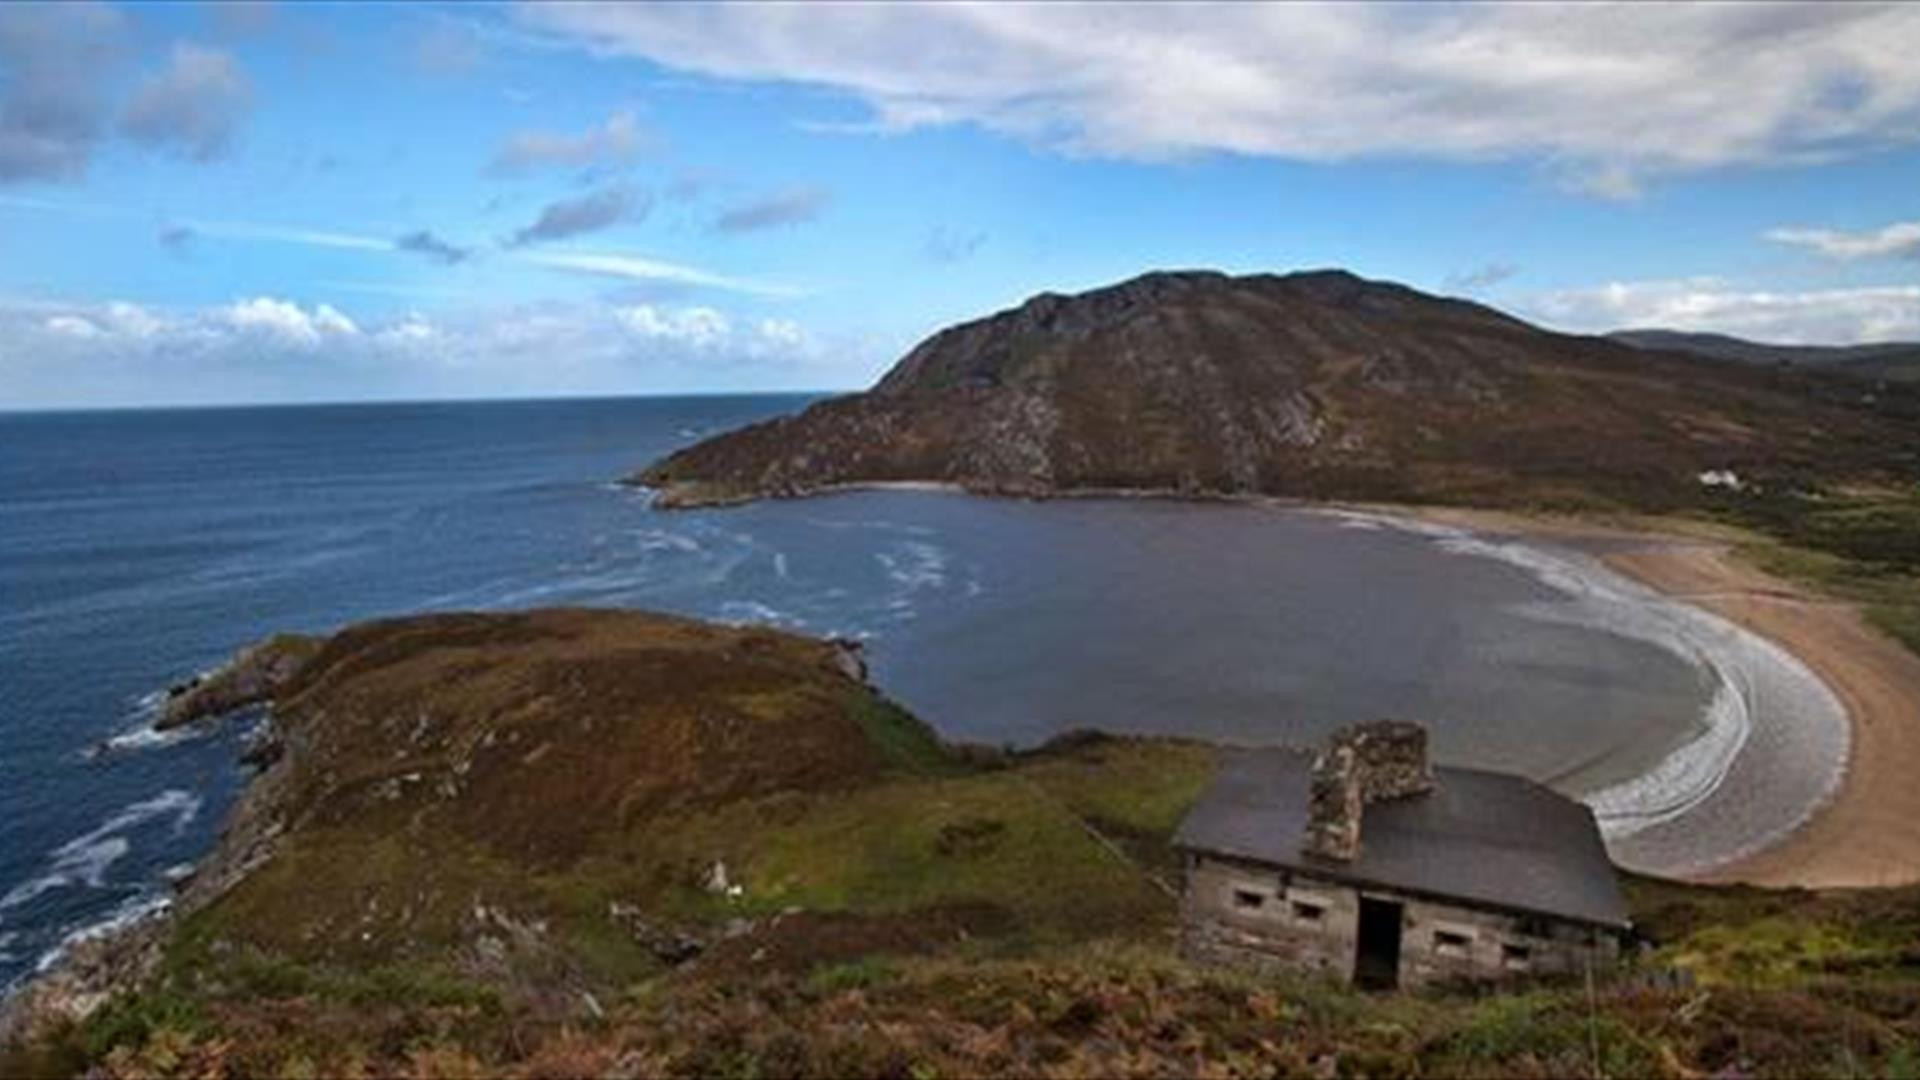 Fort Dunree in Buncrana, Co Donegal.